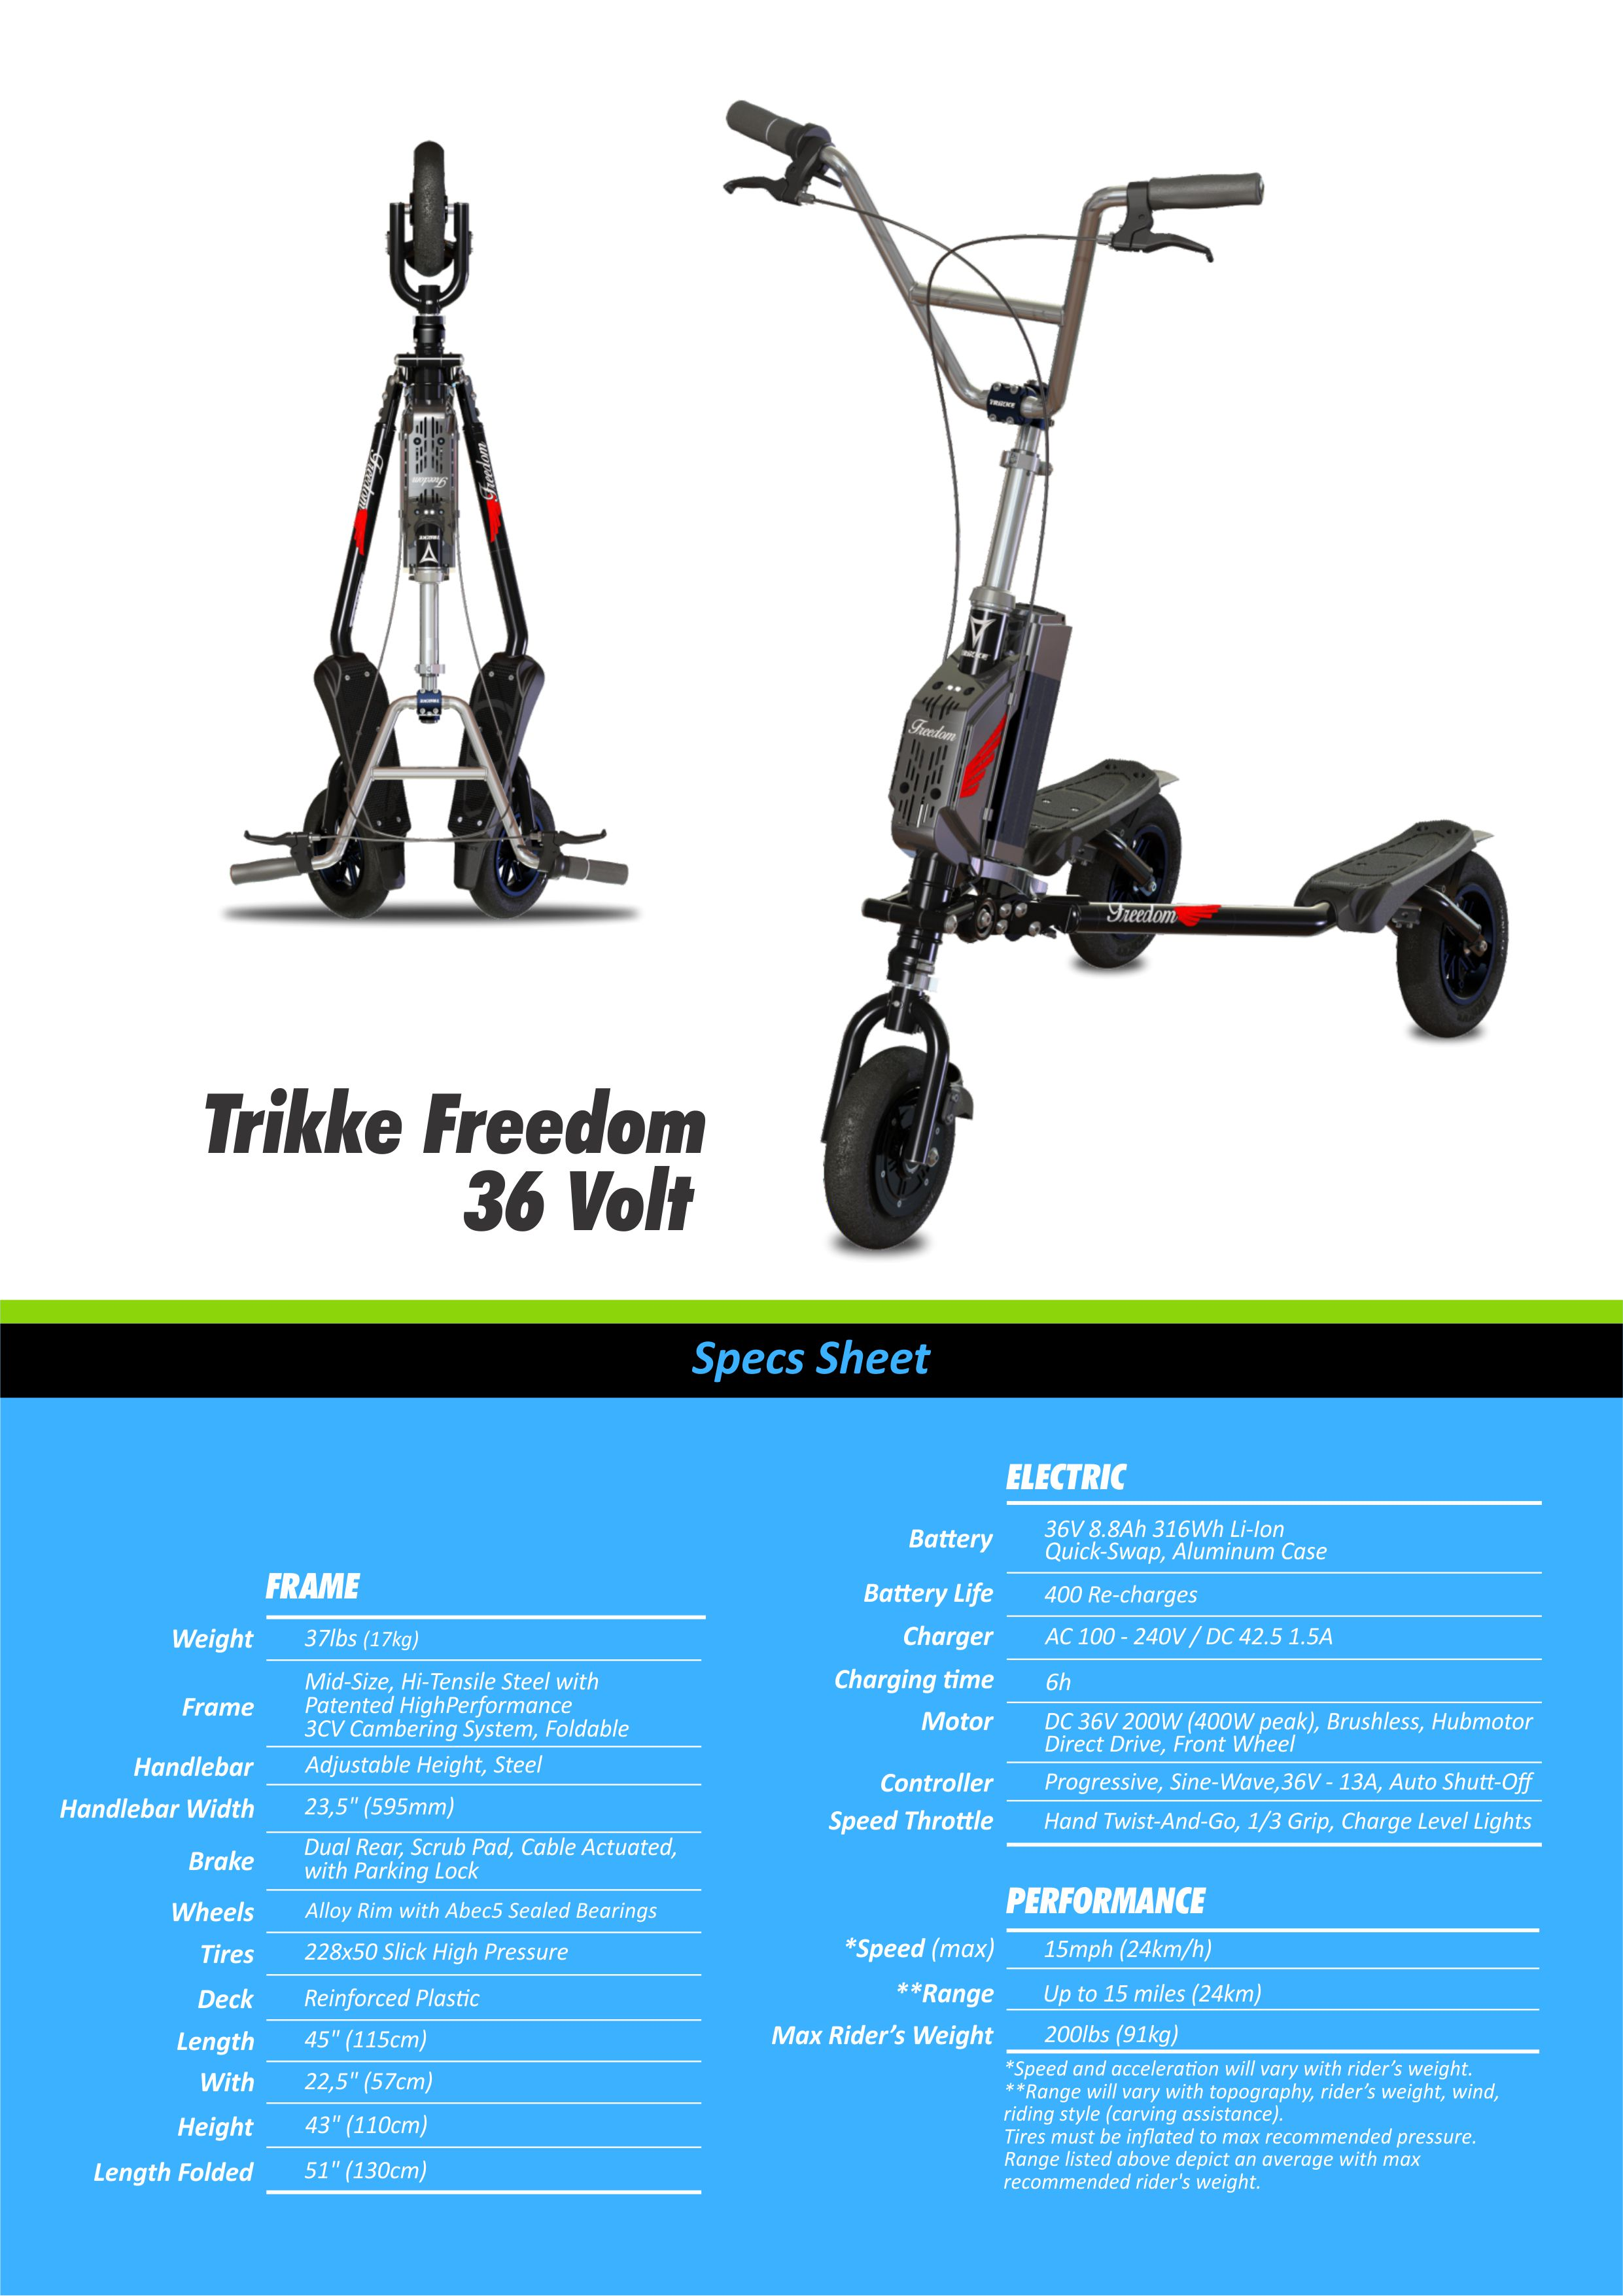 Trikke Freedom 3 Wheel Electric Scooter T6hf